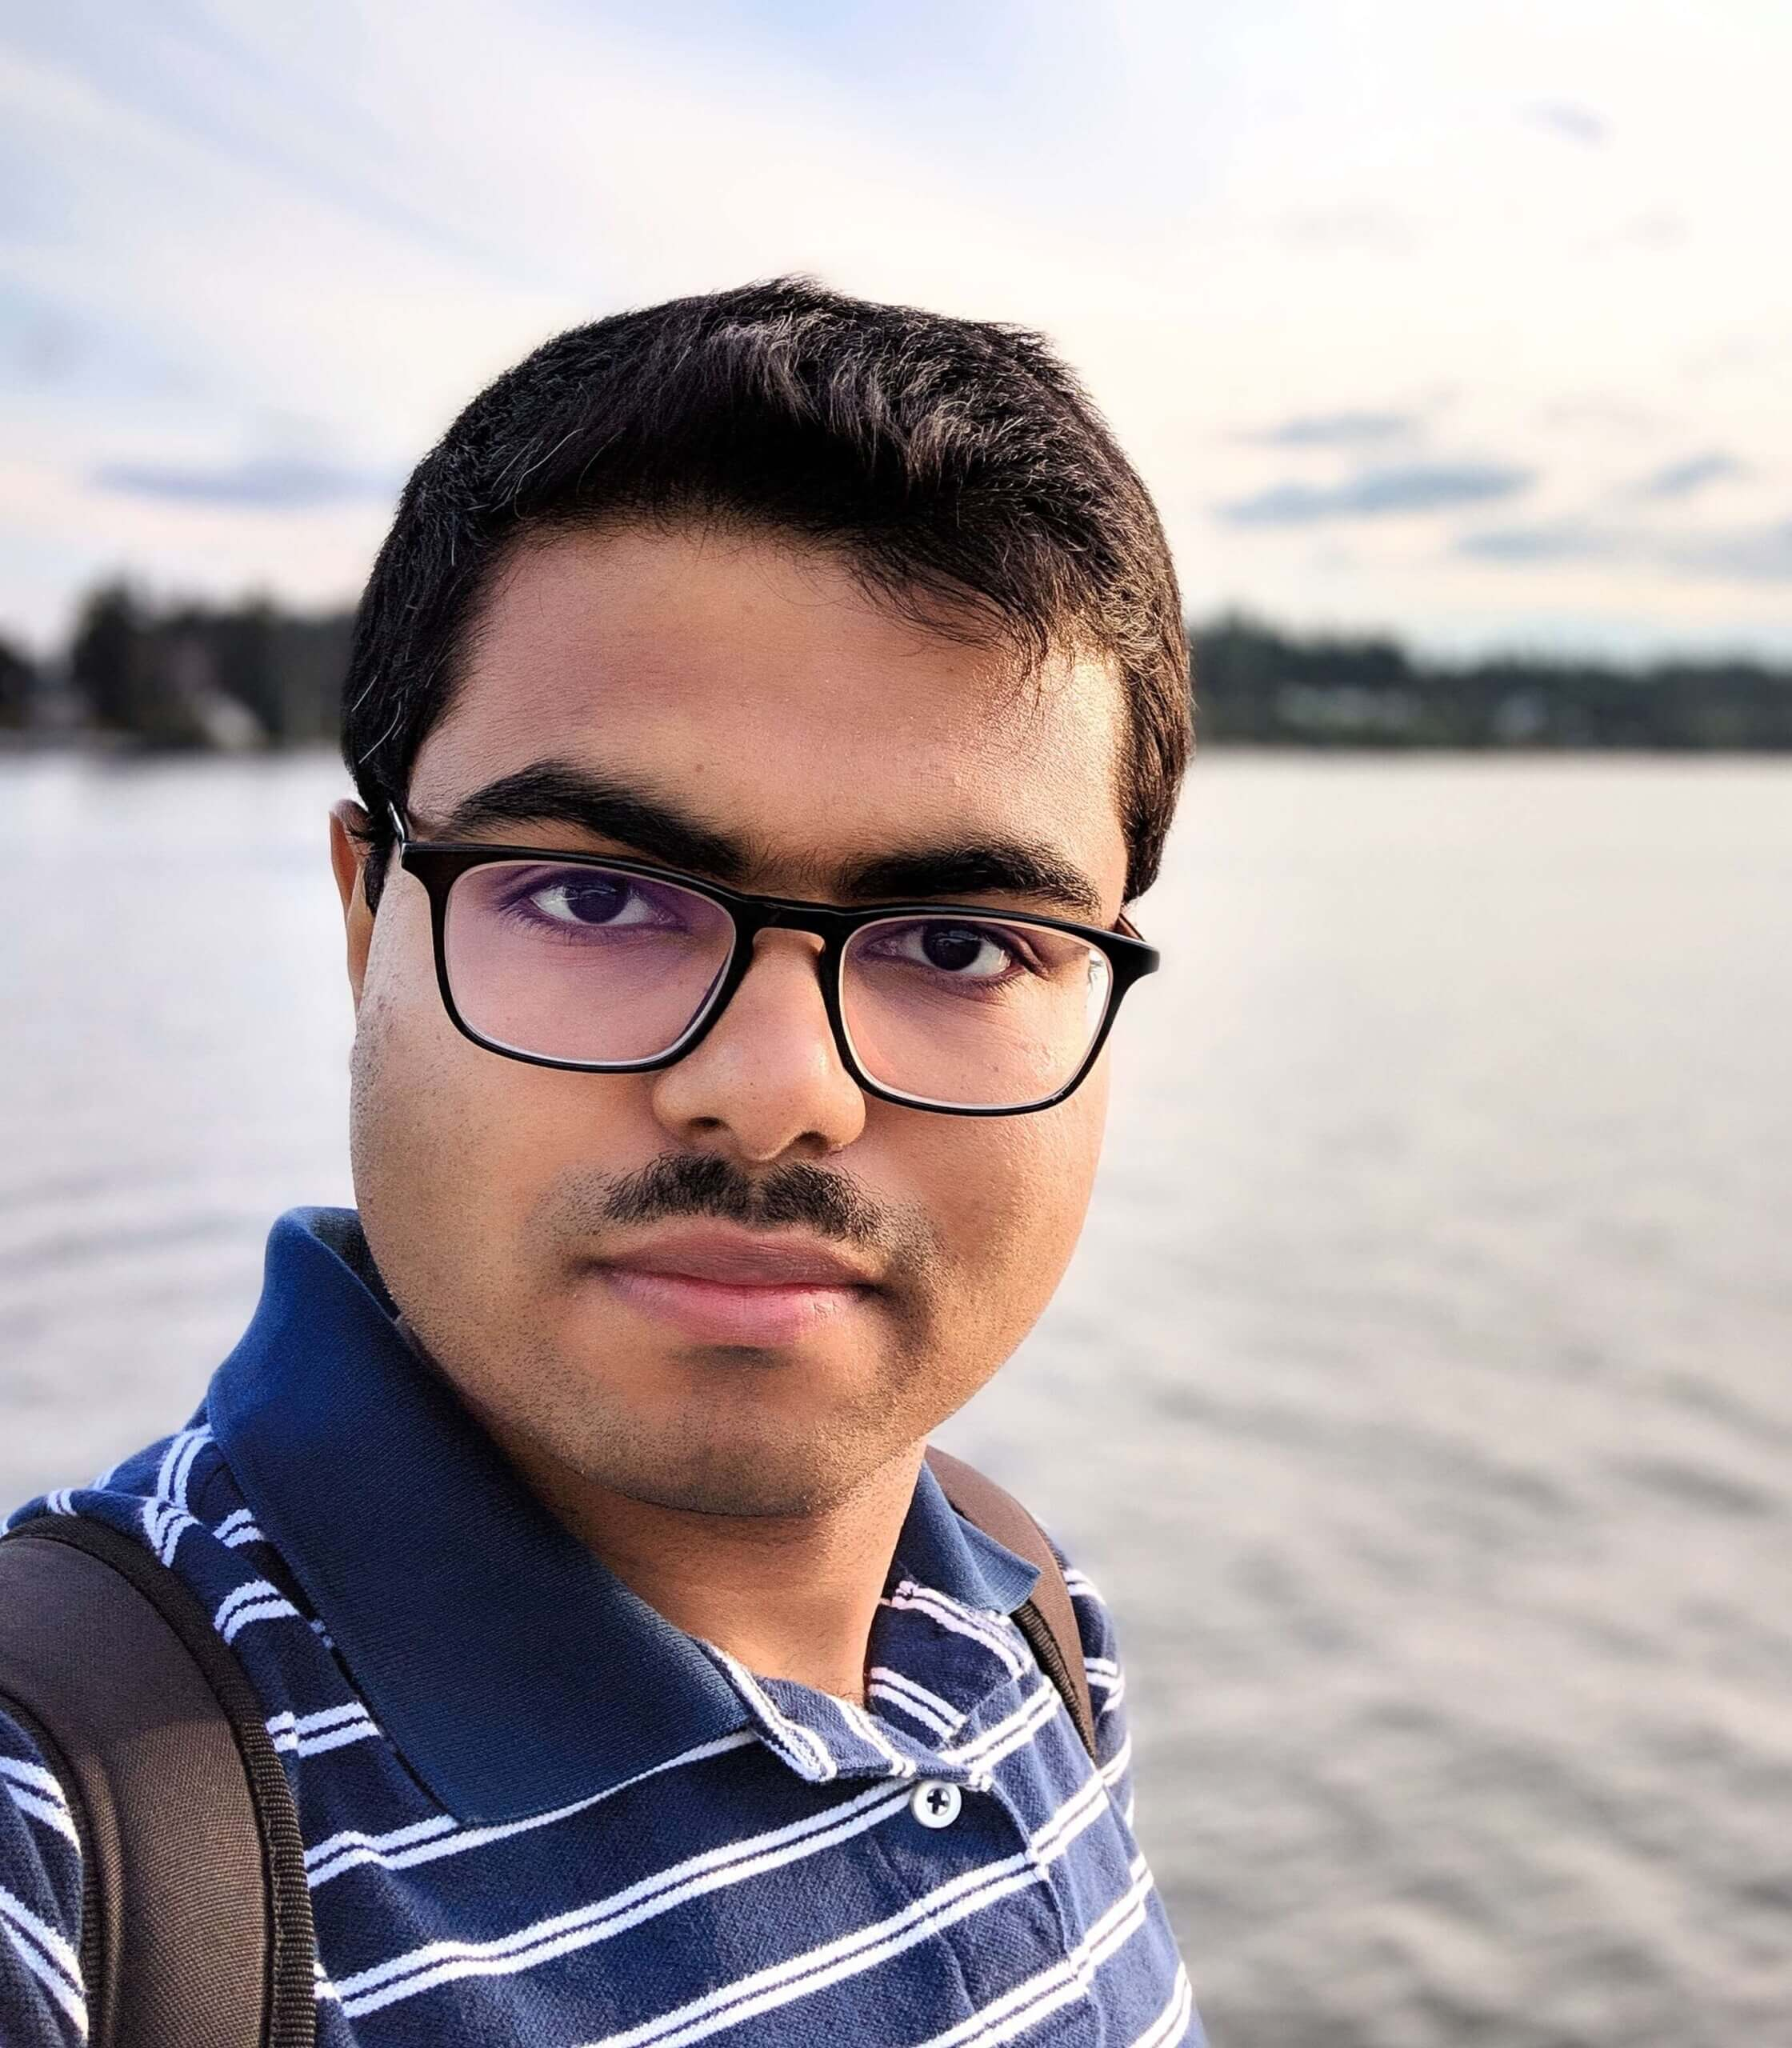 Selfie at the Bainbridge Island, Washington, USA